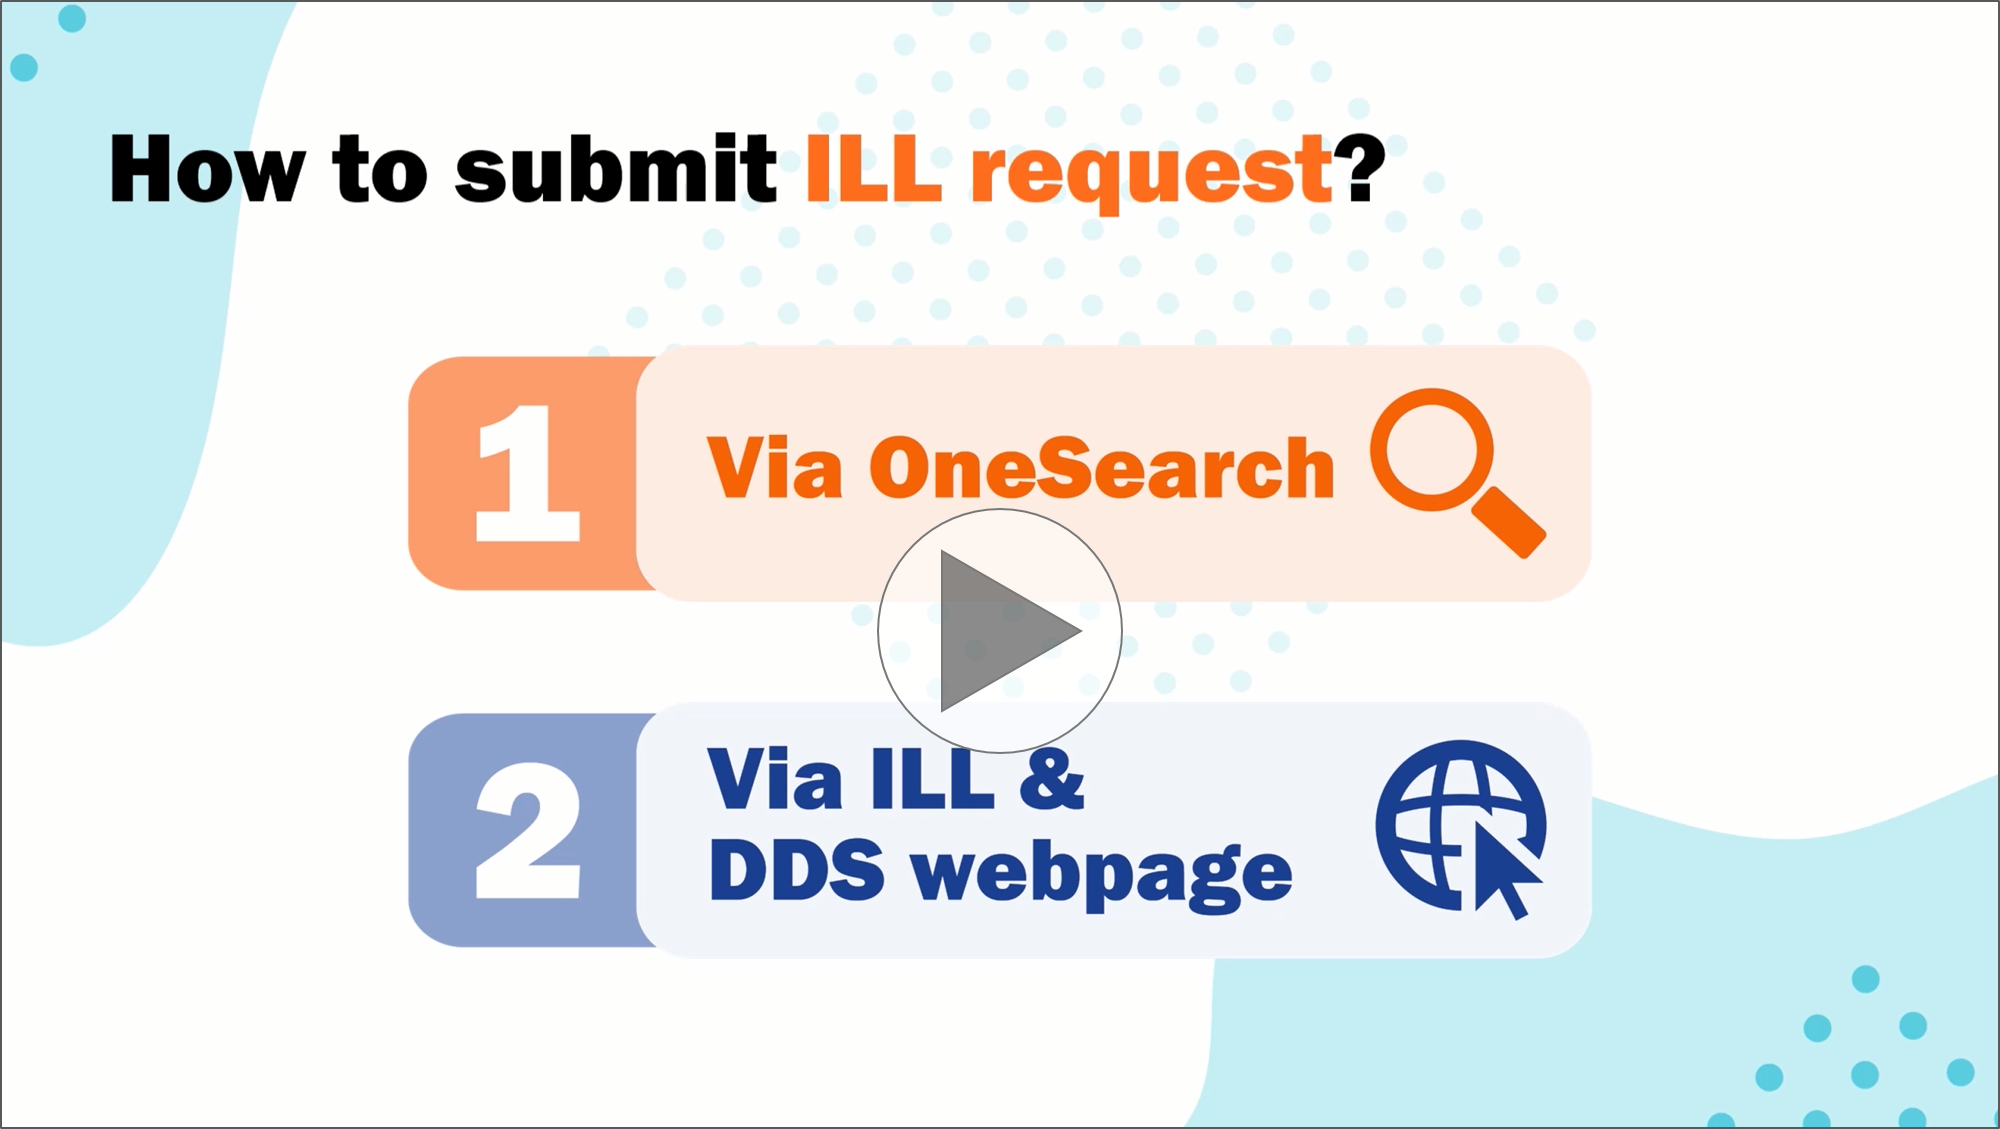 Using Interlibrary Loan Services to Request Research Materials [2:03]